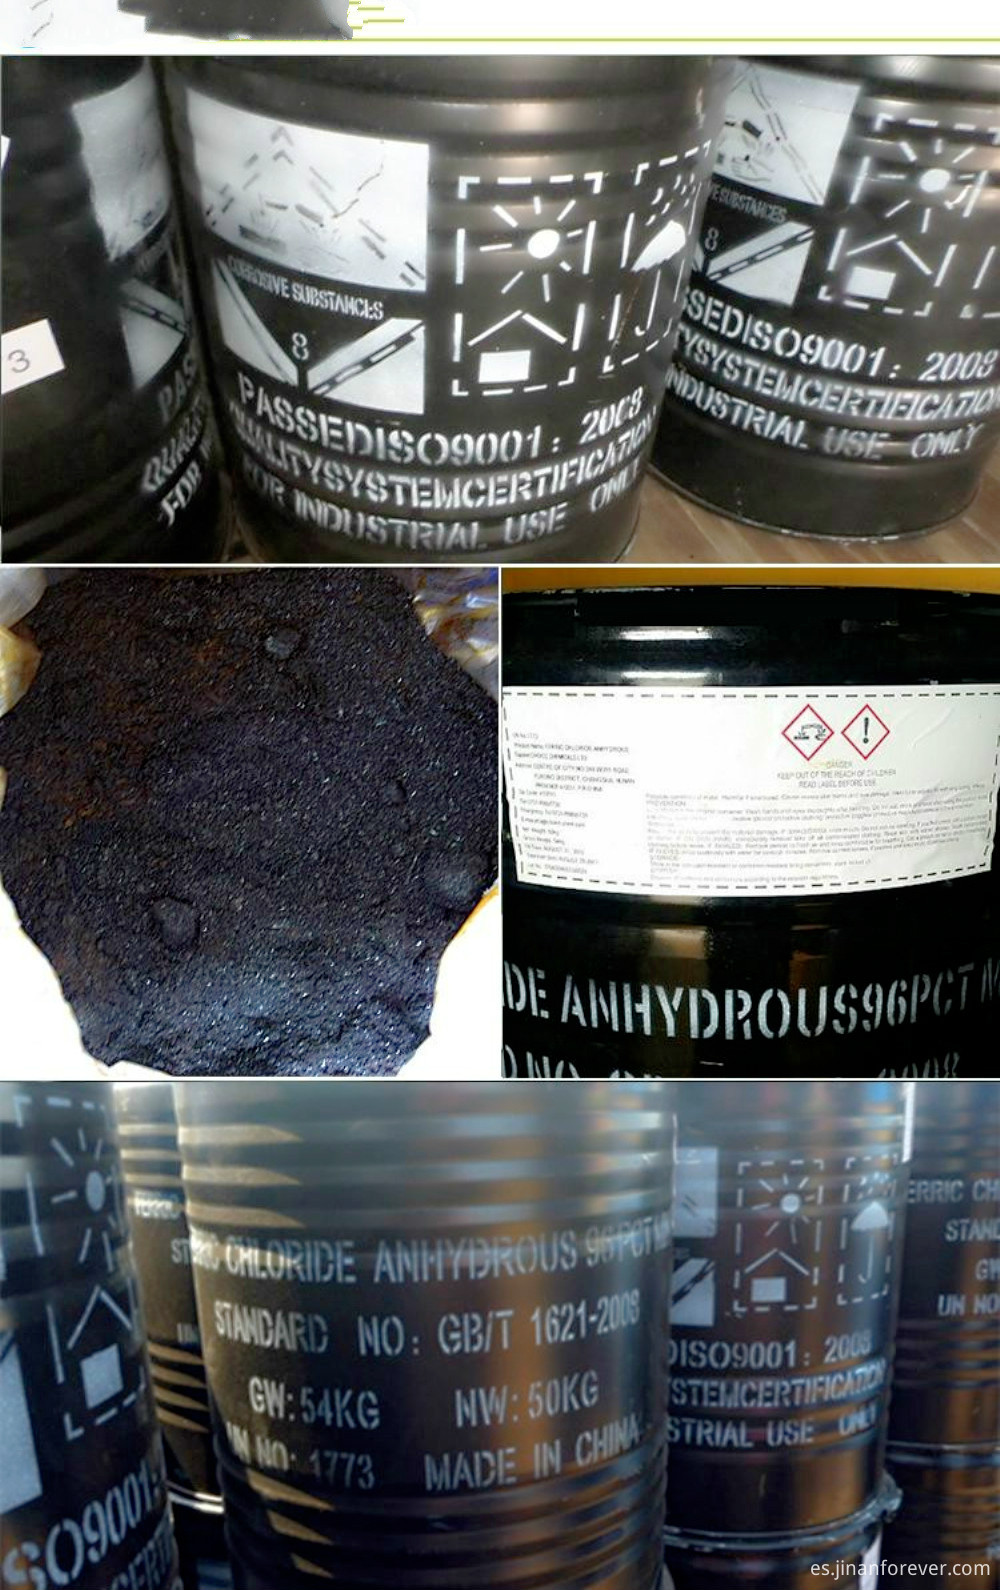 Ferric-Chloride-Anhydrous-98-Ferric-Chloride-Powder-Export China-Supply